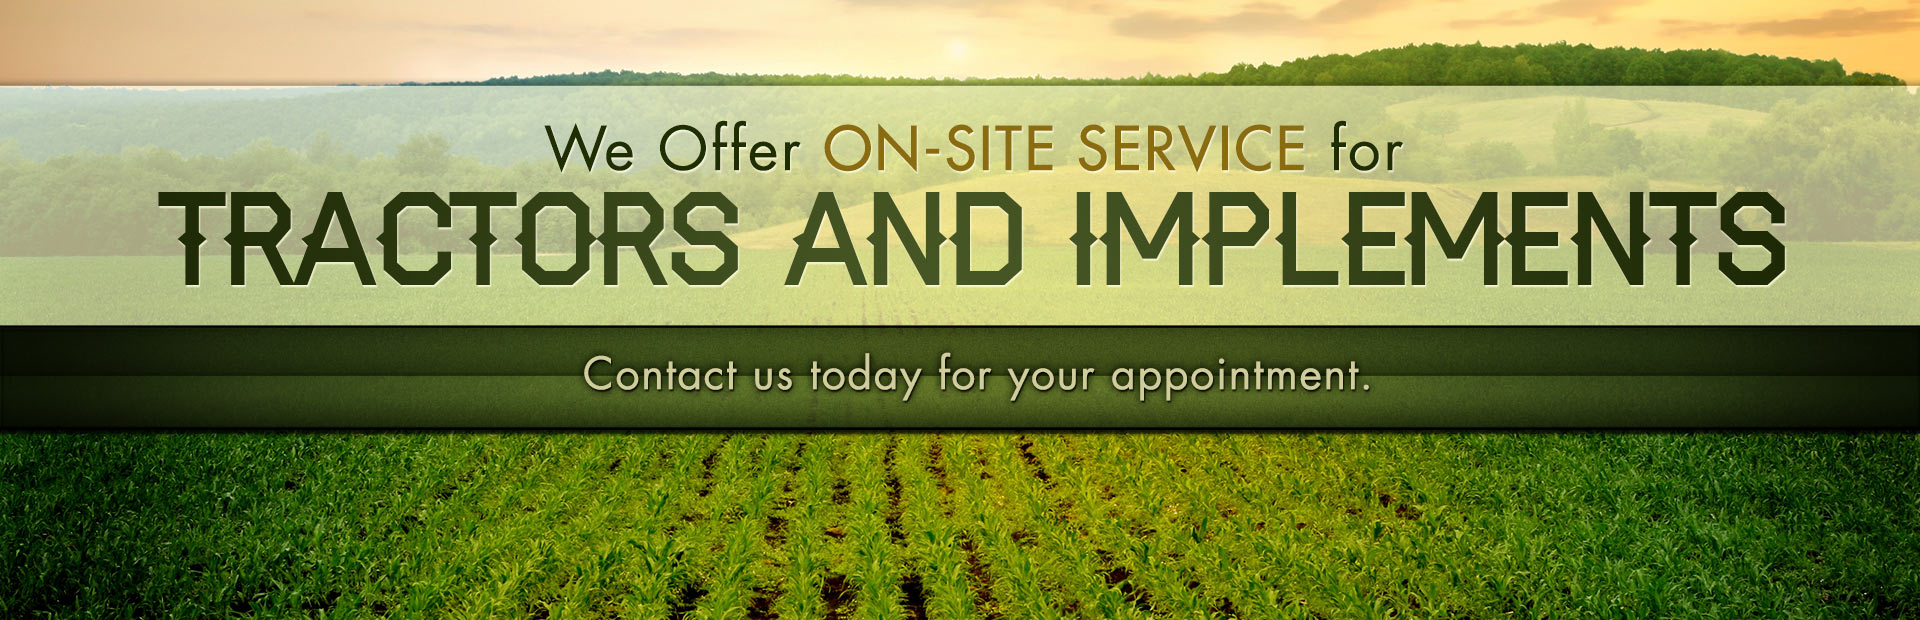 We offer on-site service for tractors and implements. Contact us today!